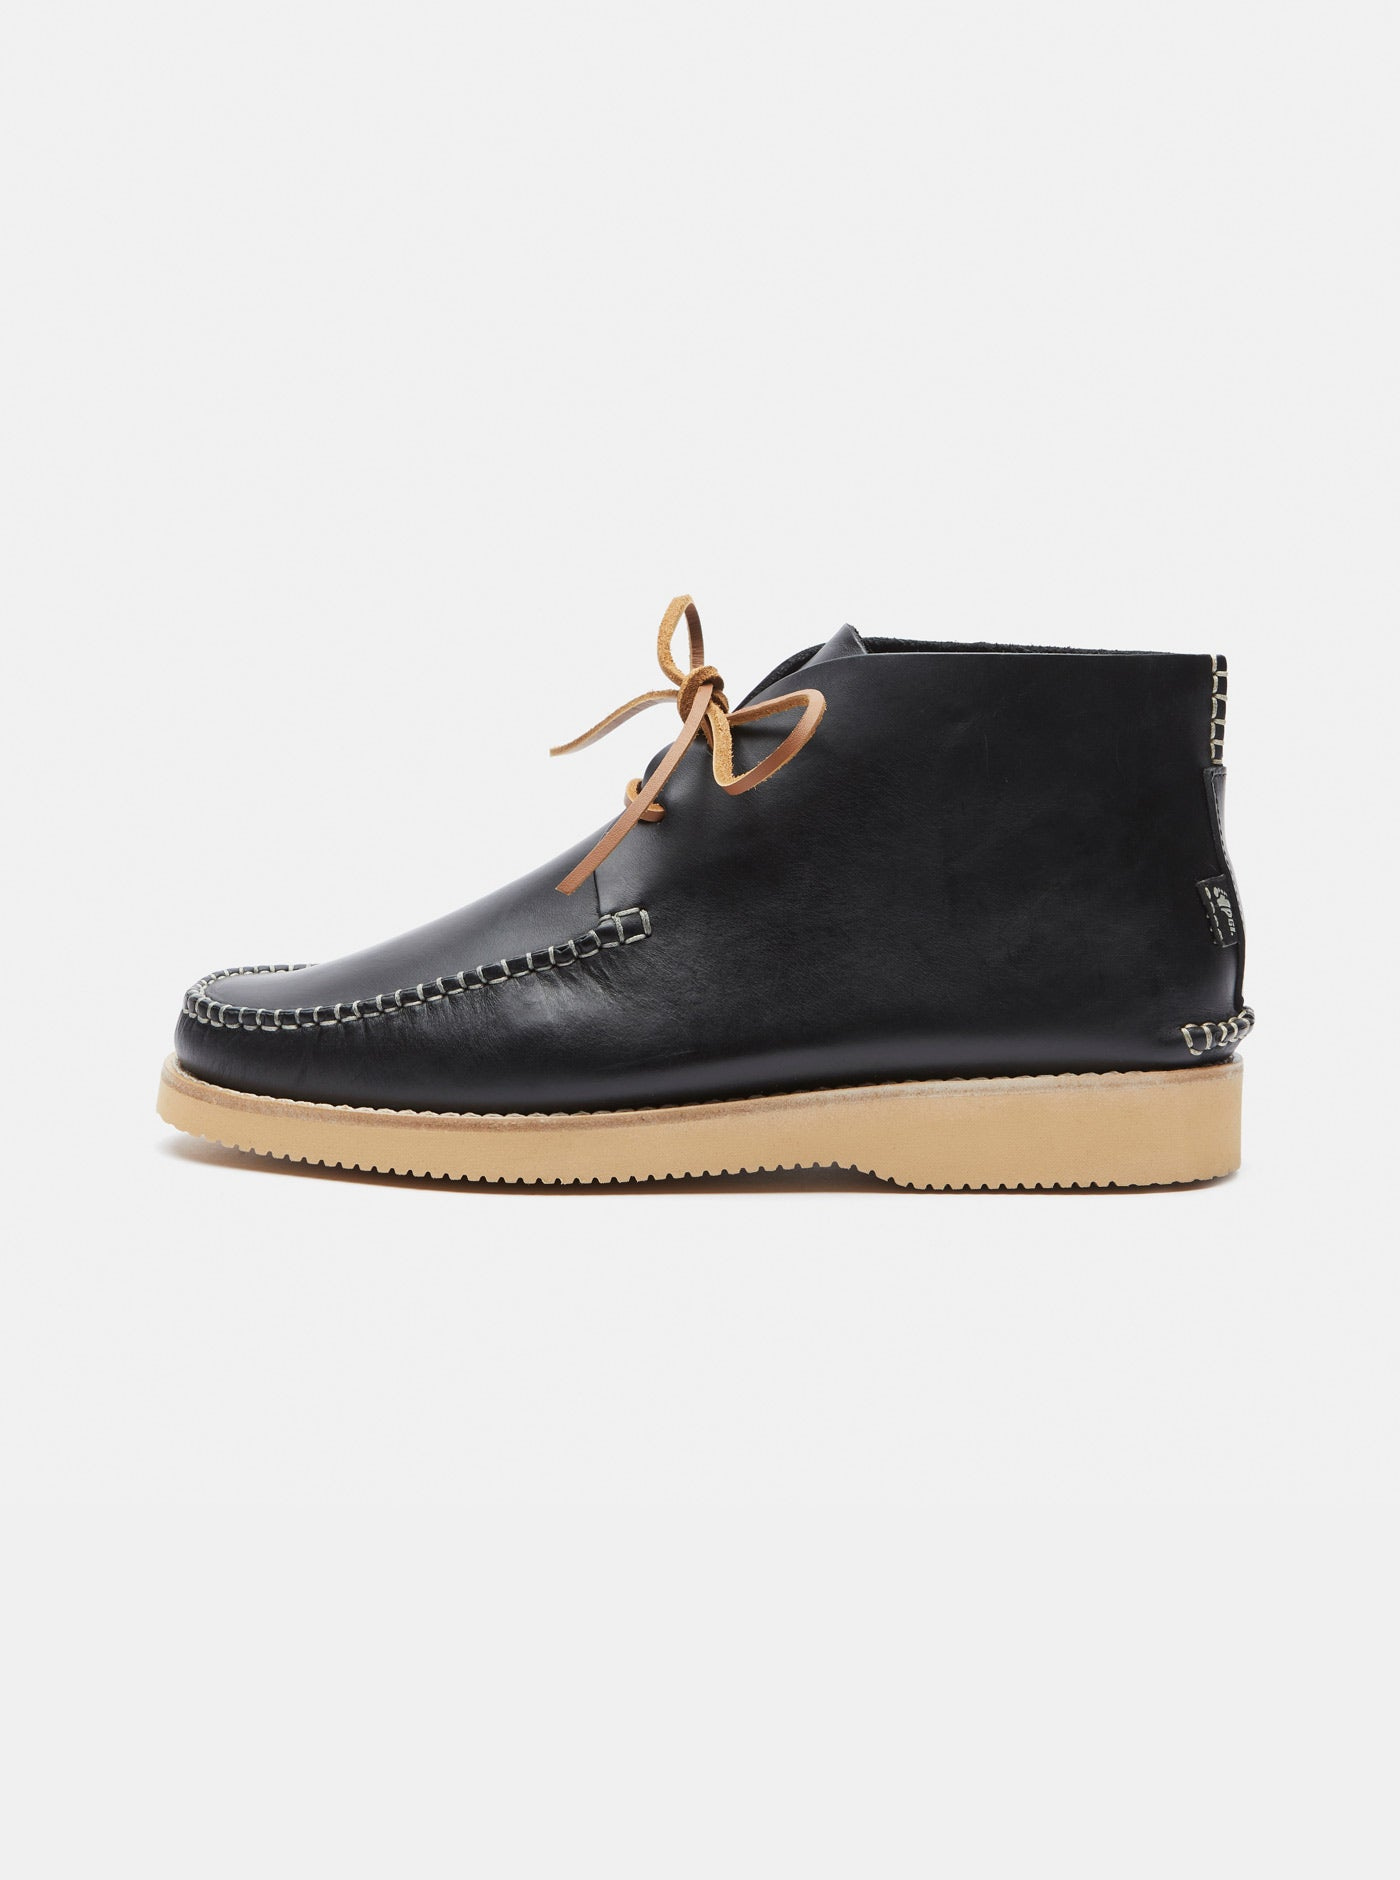 Lucas Leather Moccasin Boot Black